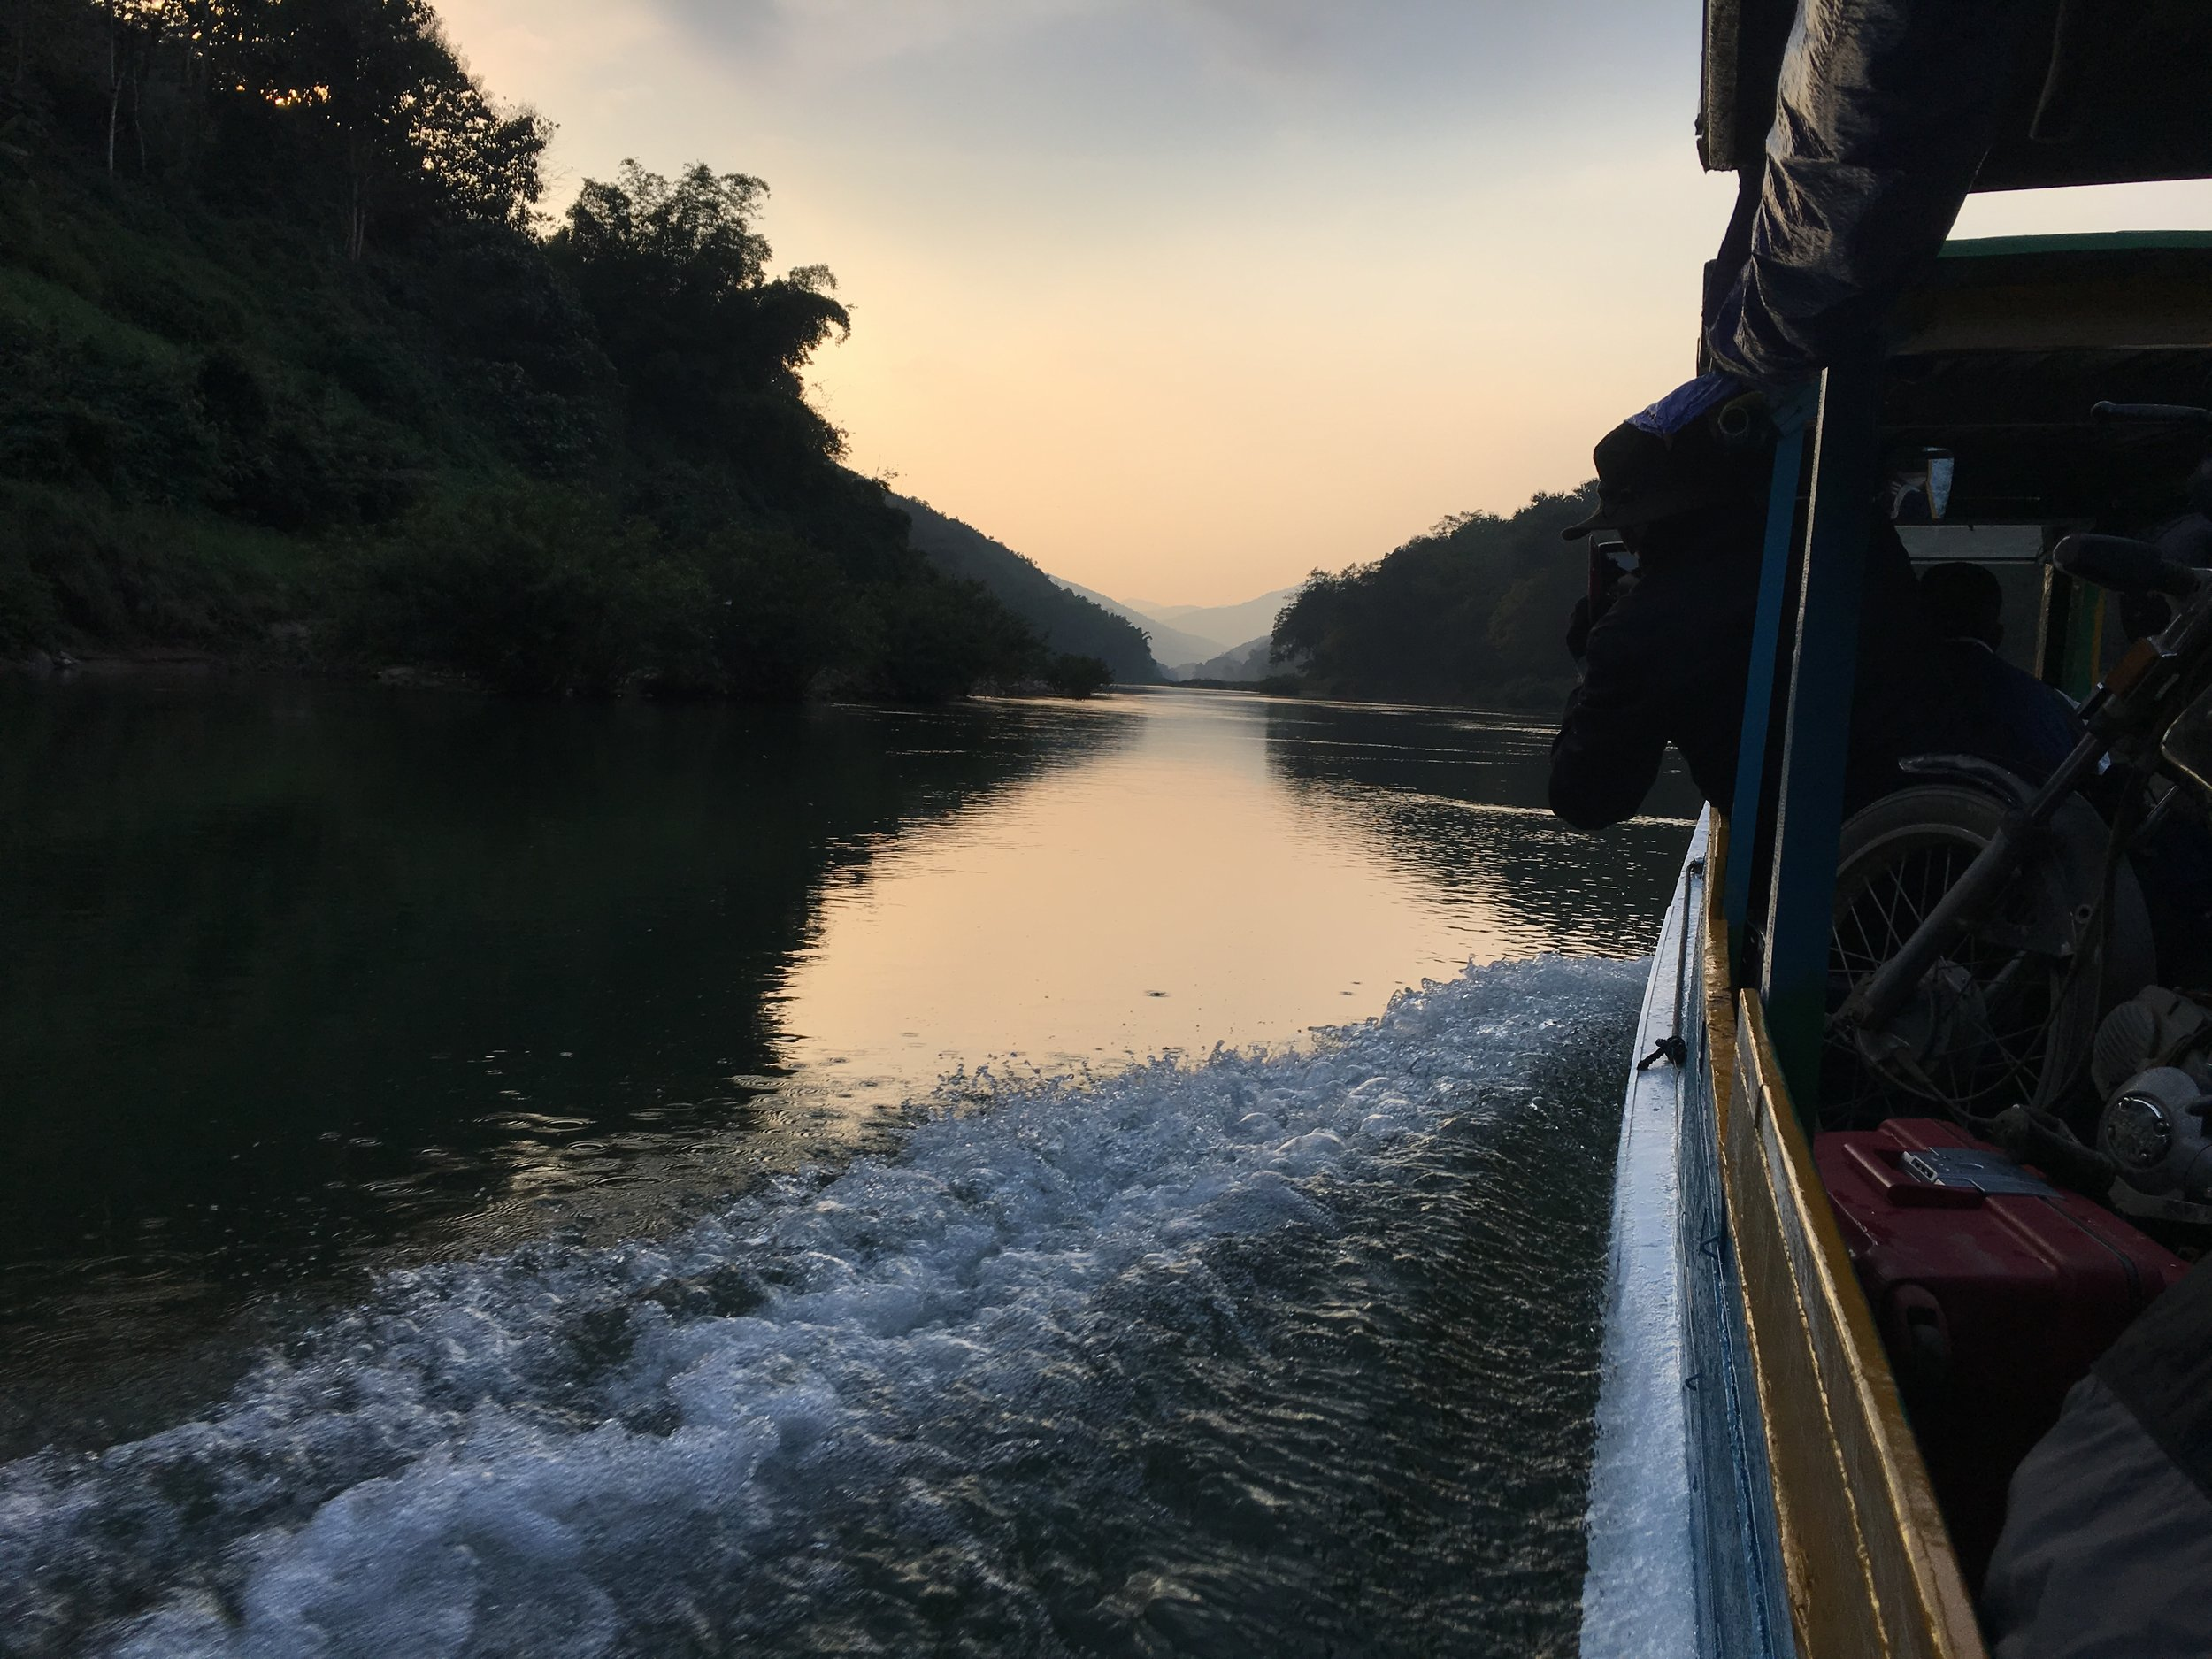 With the sun setting and the boat sinking on the Nam Ou River, it seemed we were in a race against time.